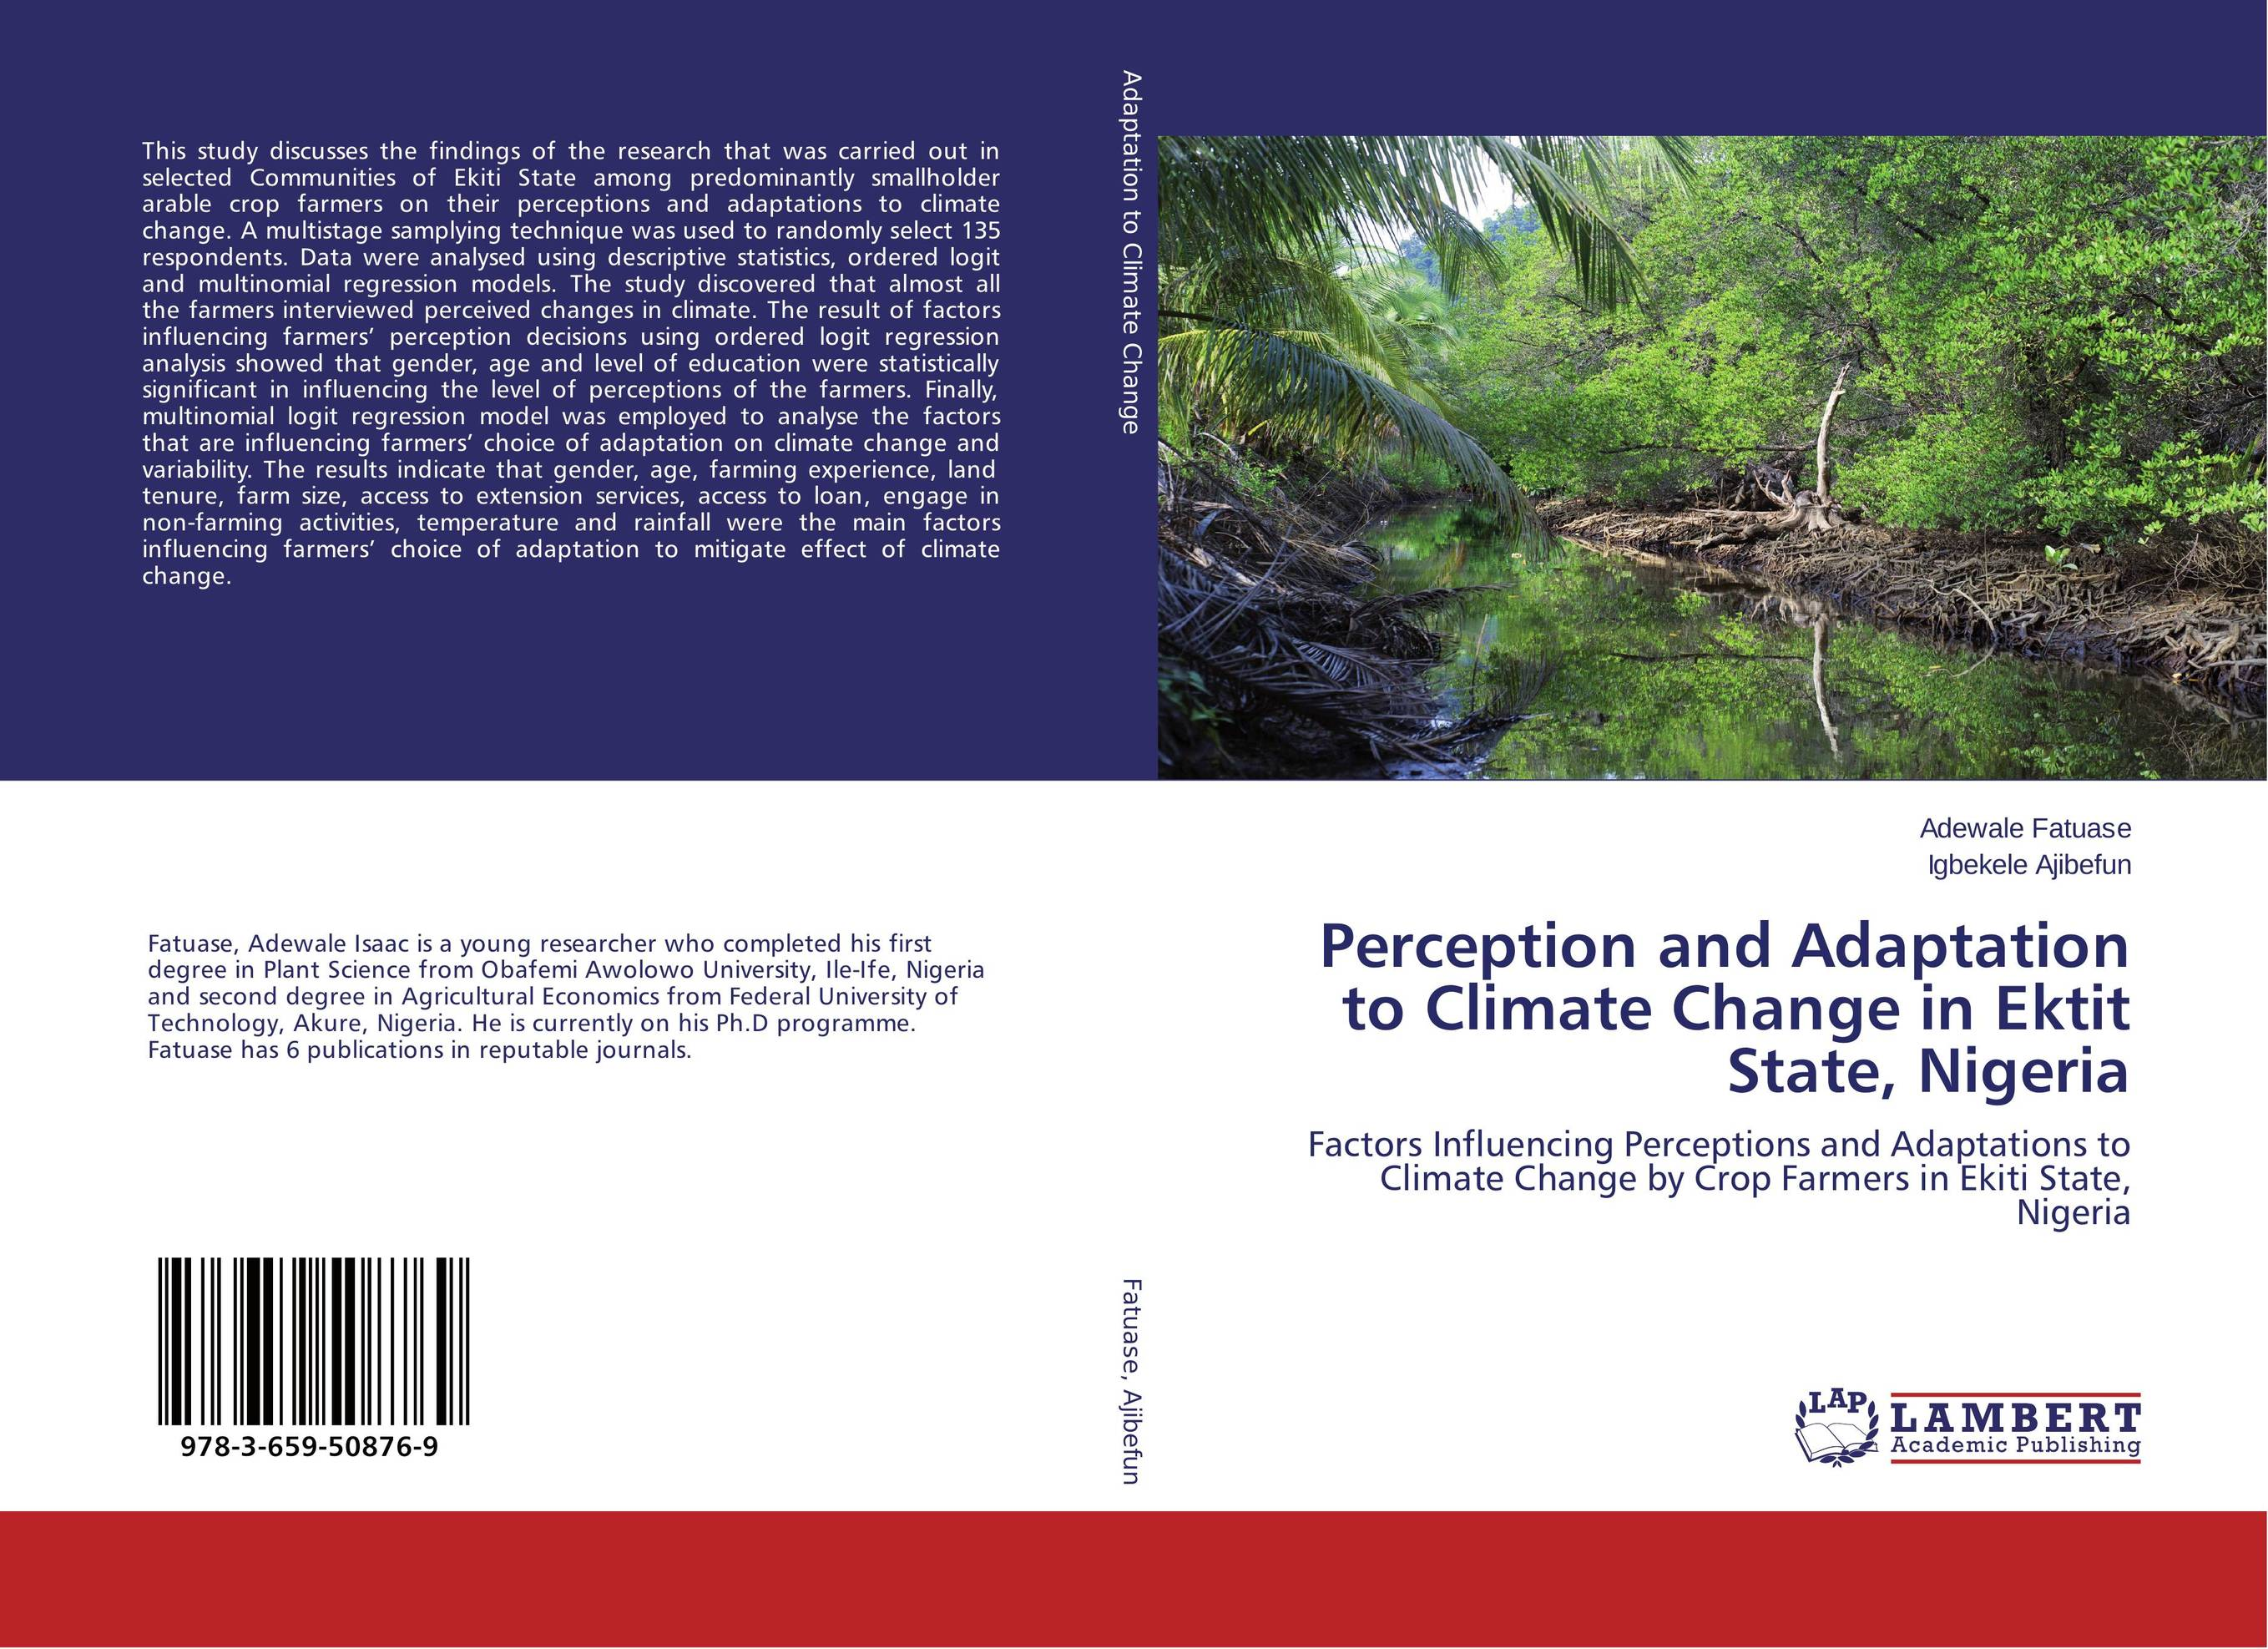 Perception and Adaptation to Climate Change in Ektit State, Nigeria 146g 10k 2 5 sas hard drive 42d0422 st9146802ss original 95